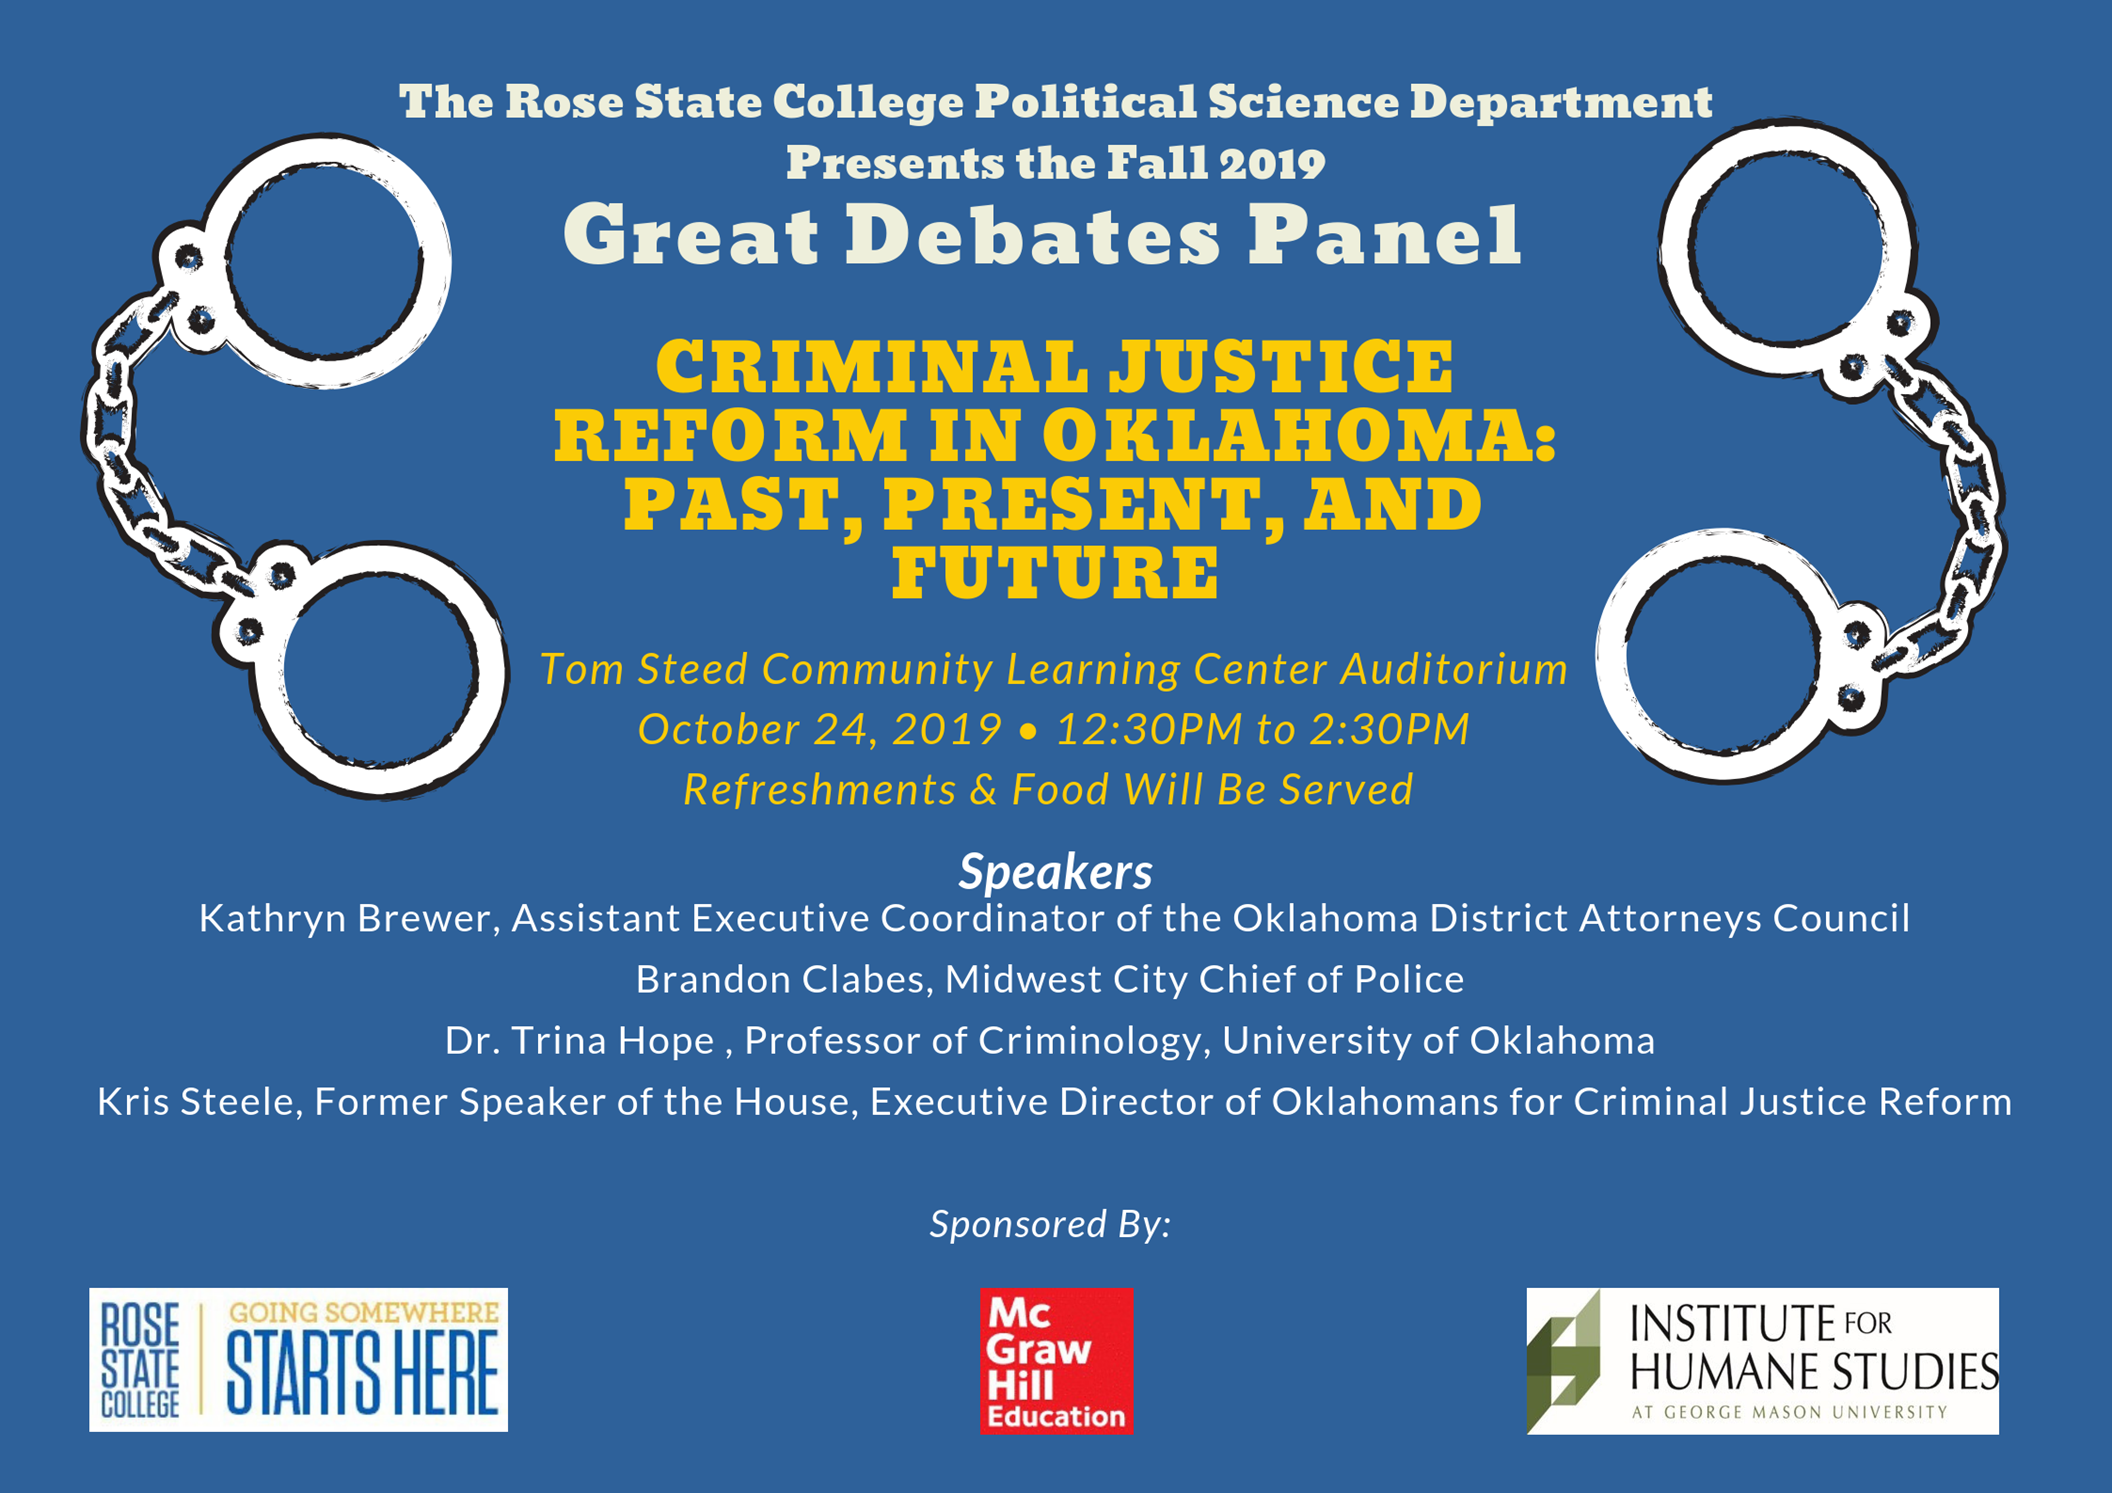 Criminal Justice Reform in Oklahoma - Great Debate Panel